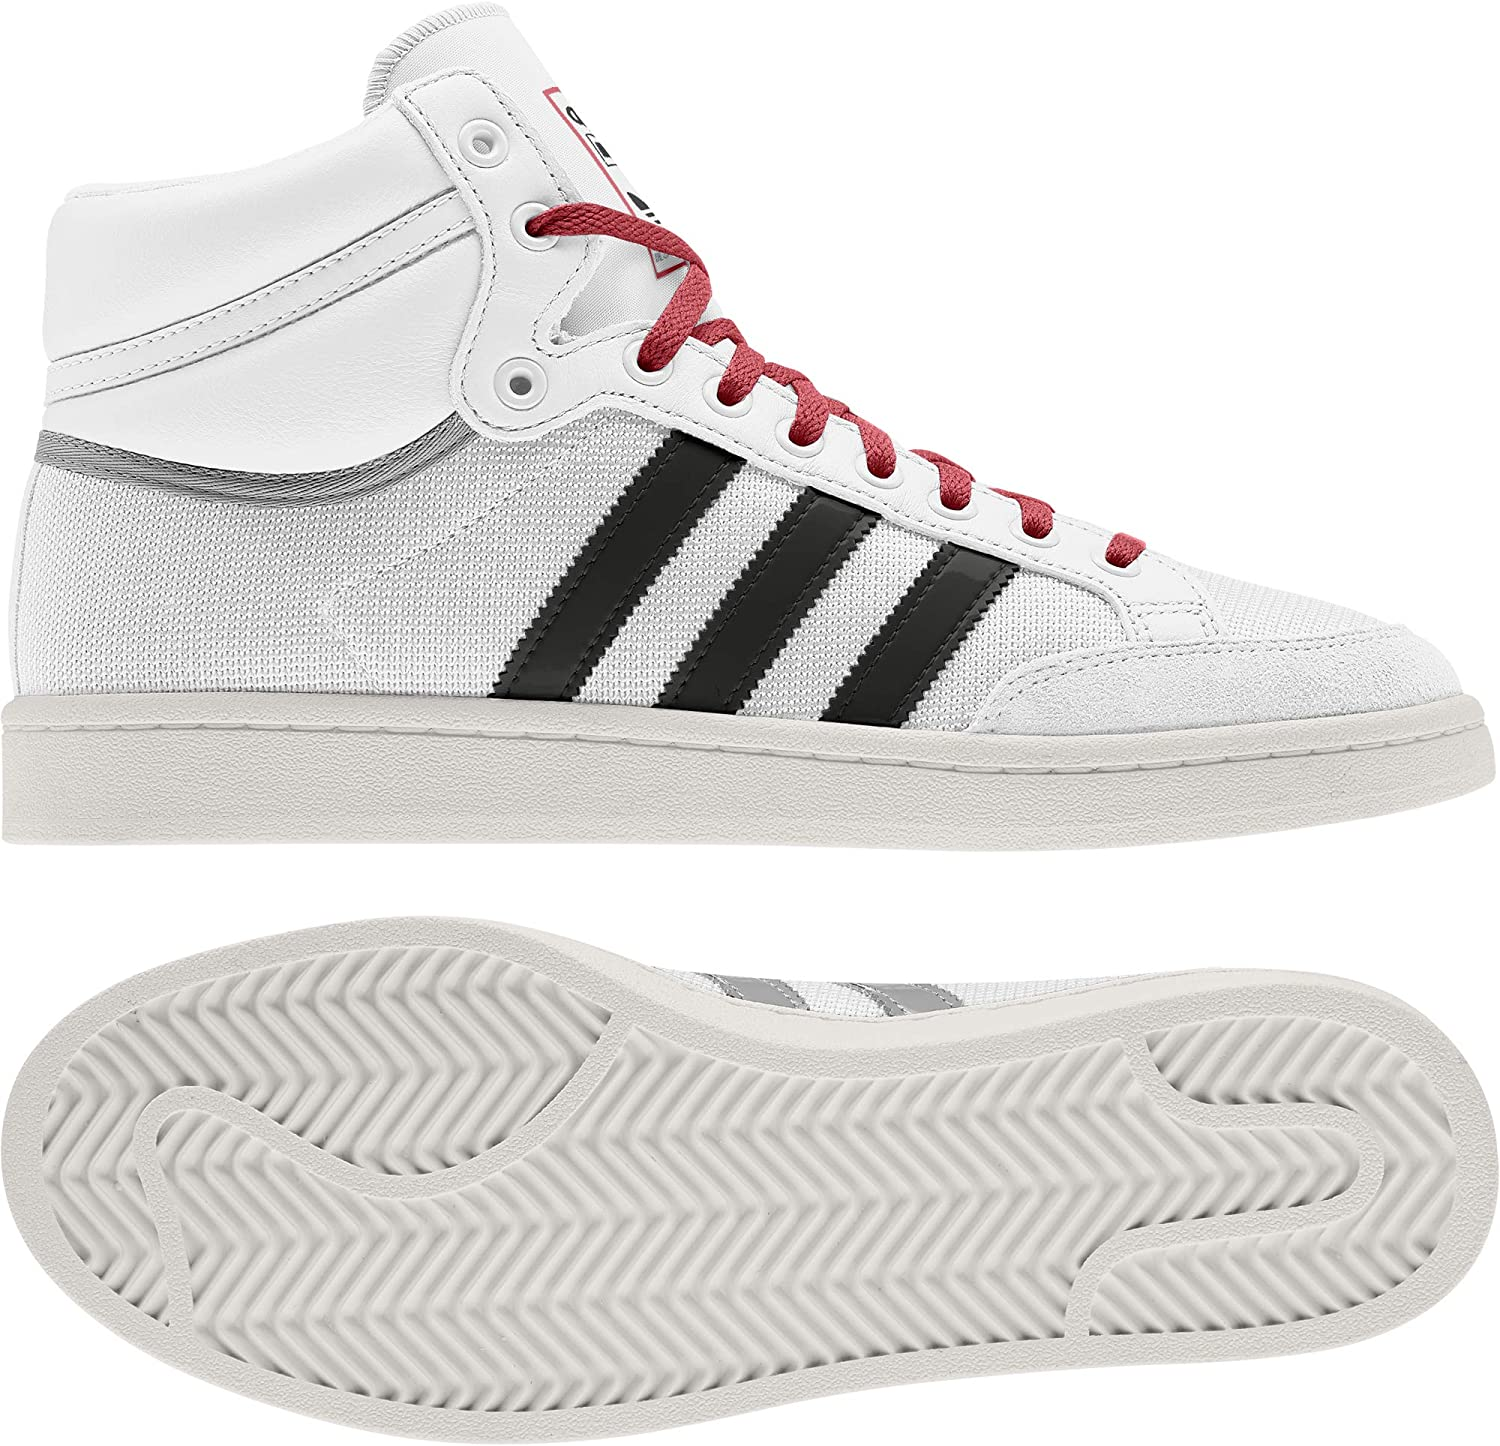 adidas Originals Chaussures Americana Hi: Amazon.es: Deportes y ...